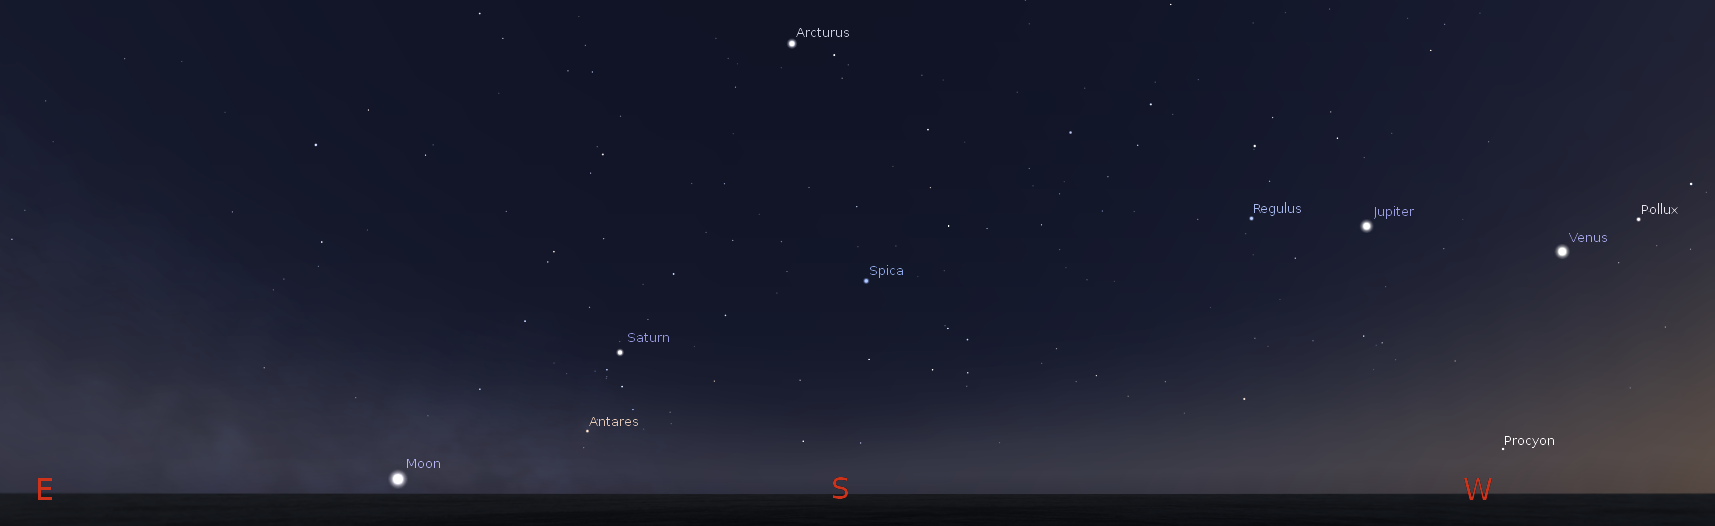 evening planets visible -#main